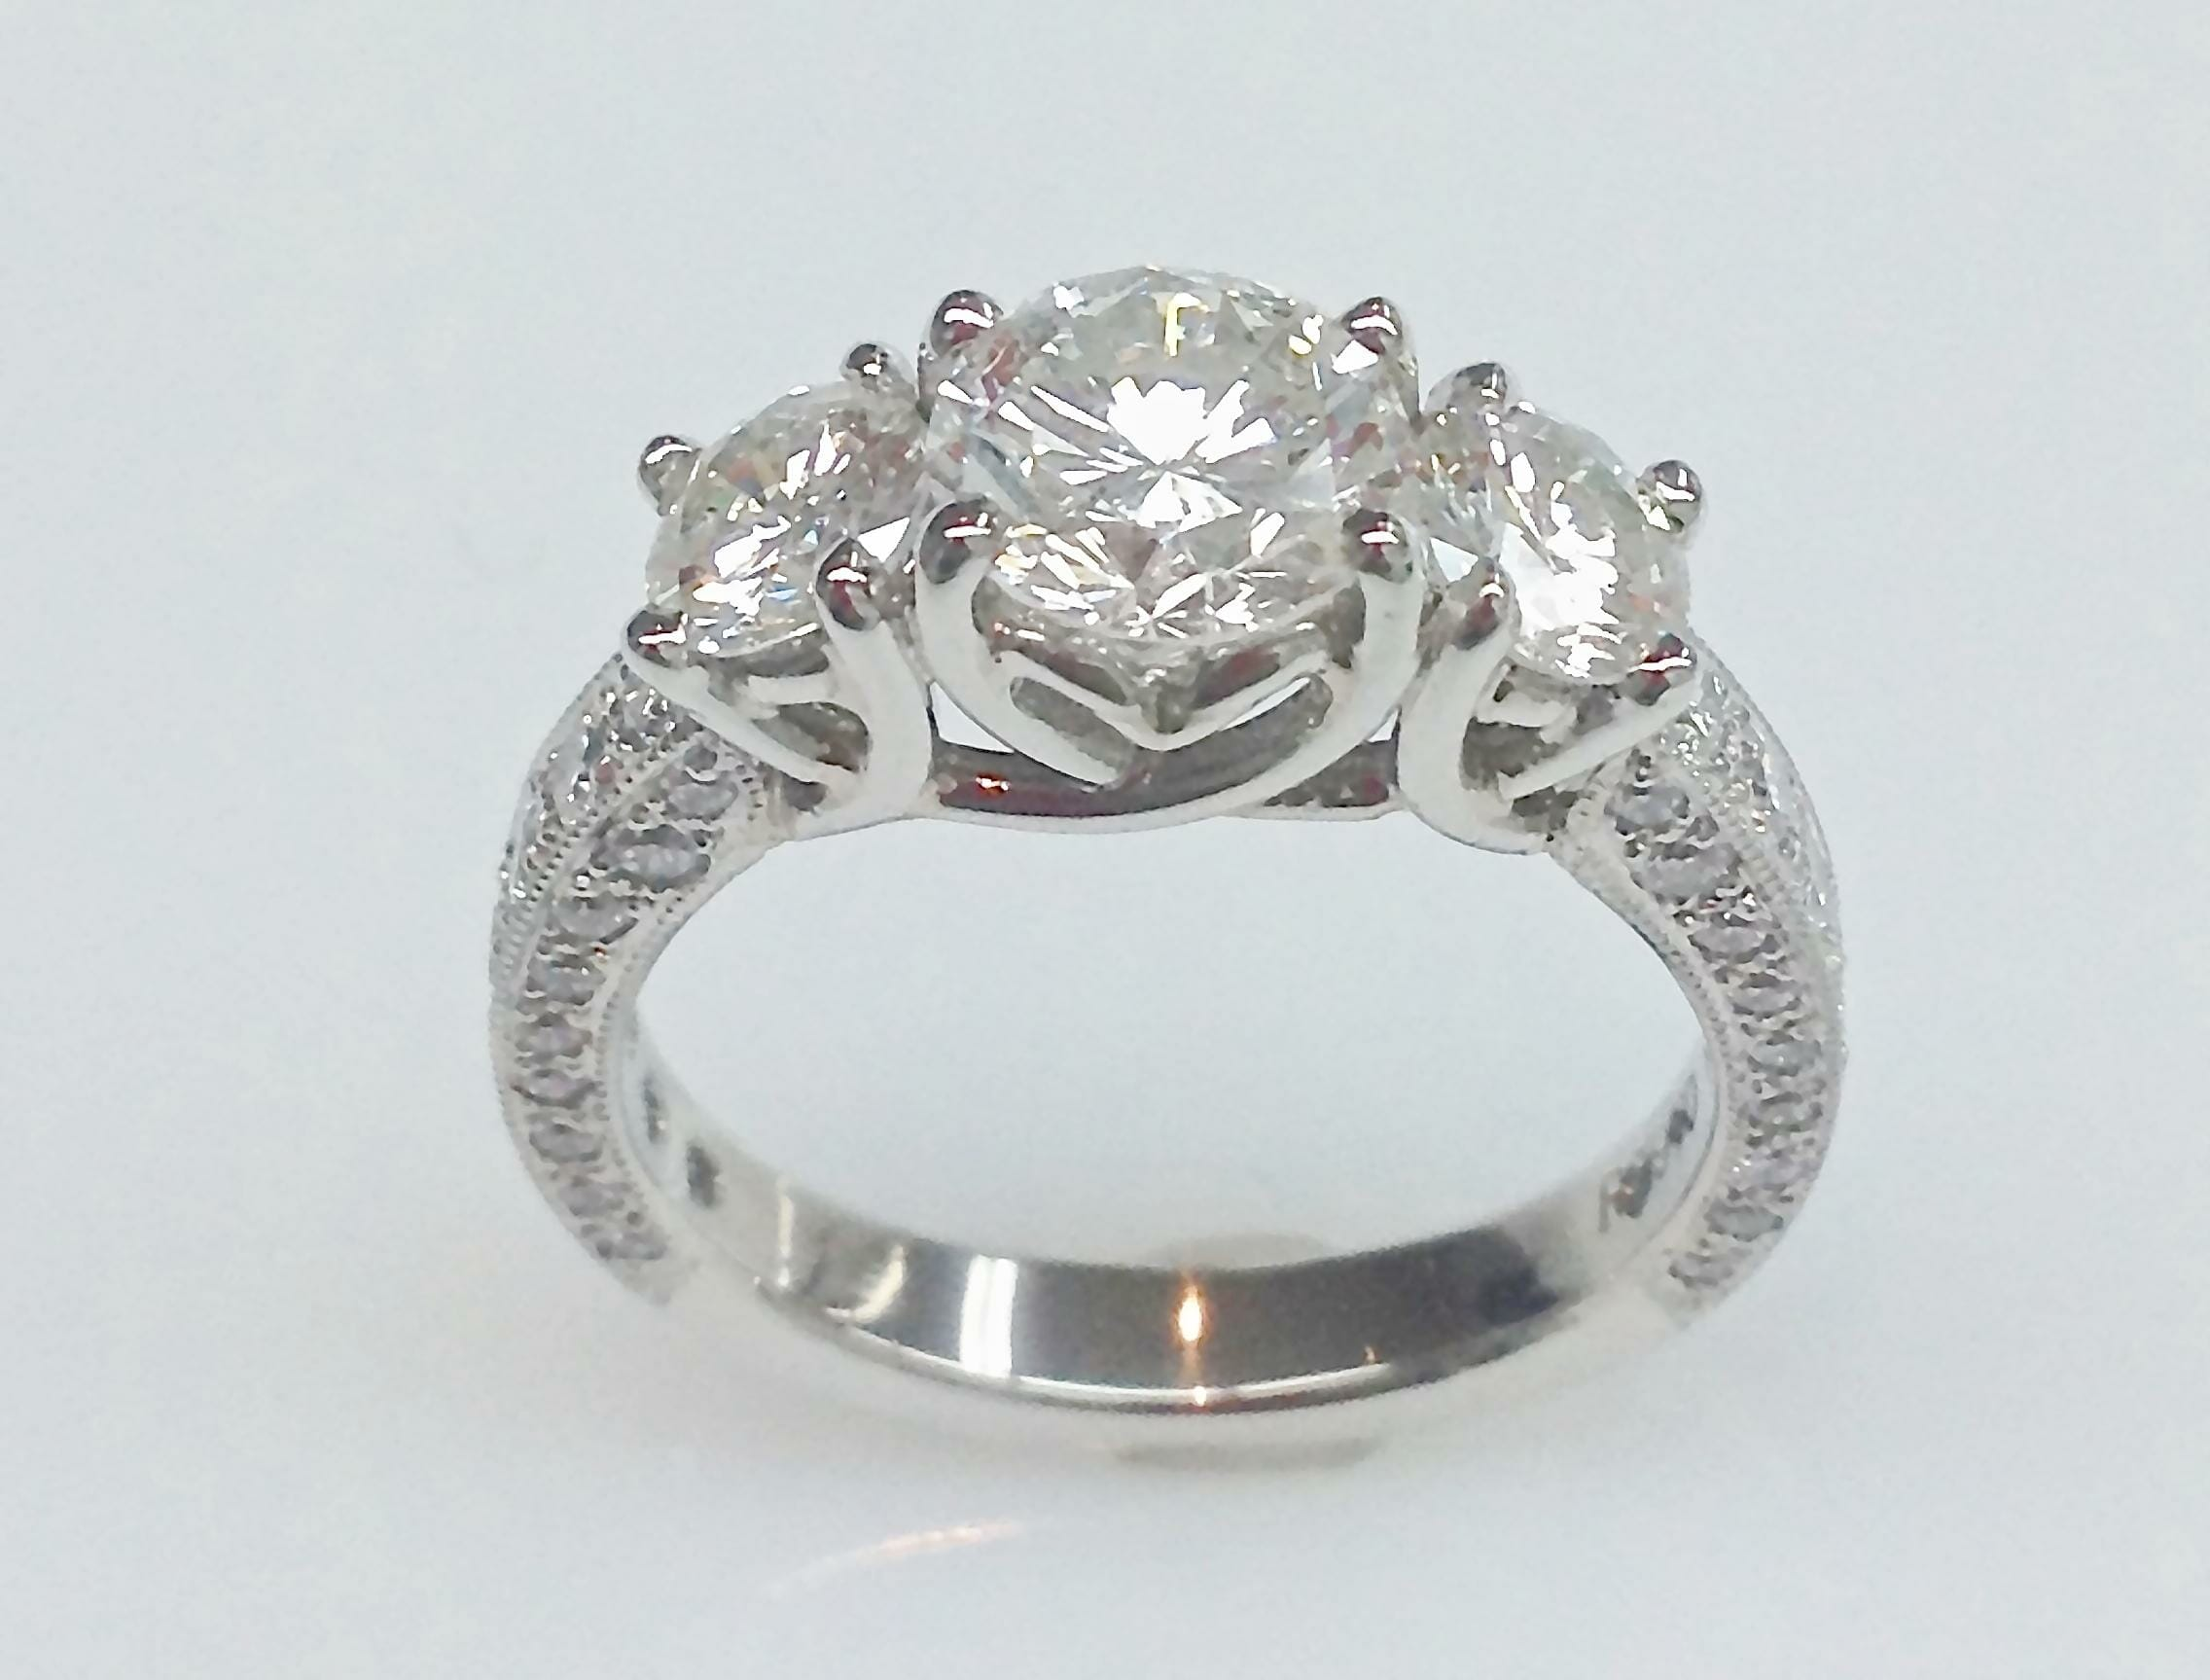 co diamond of product universe jewellery ring engagement center galili for my stone forevermark